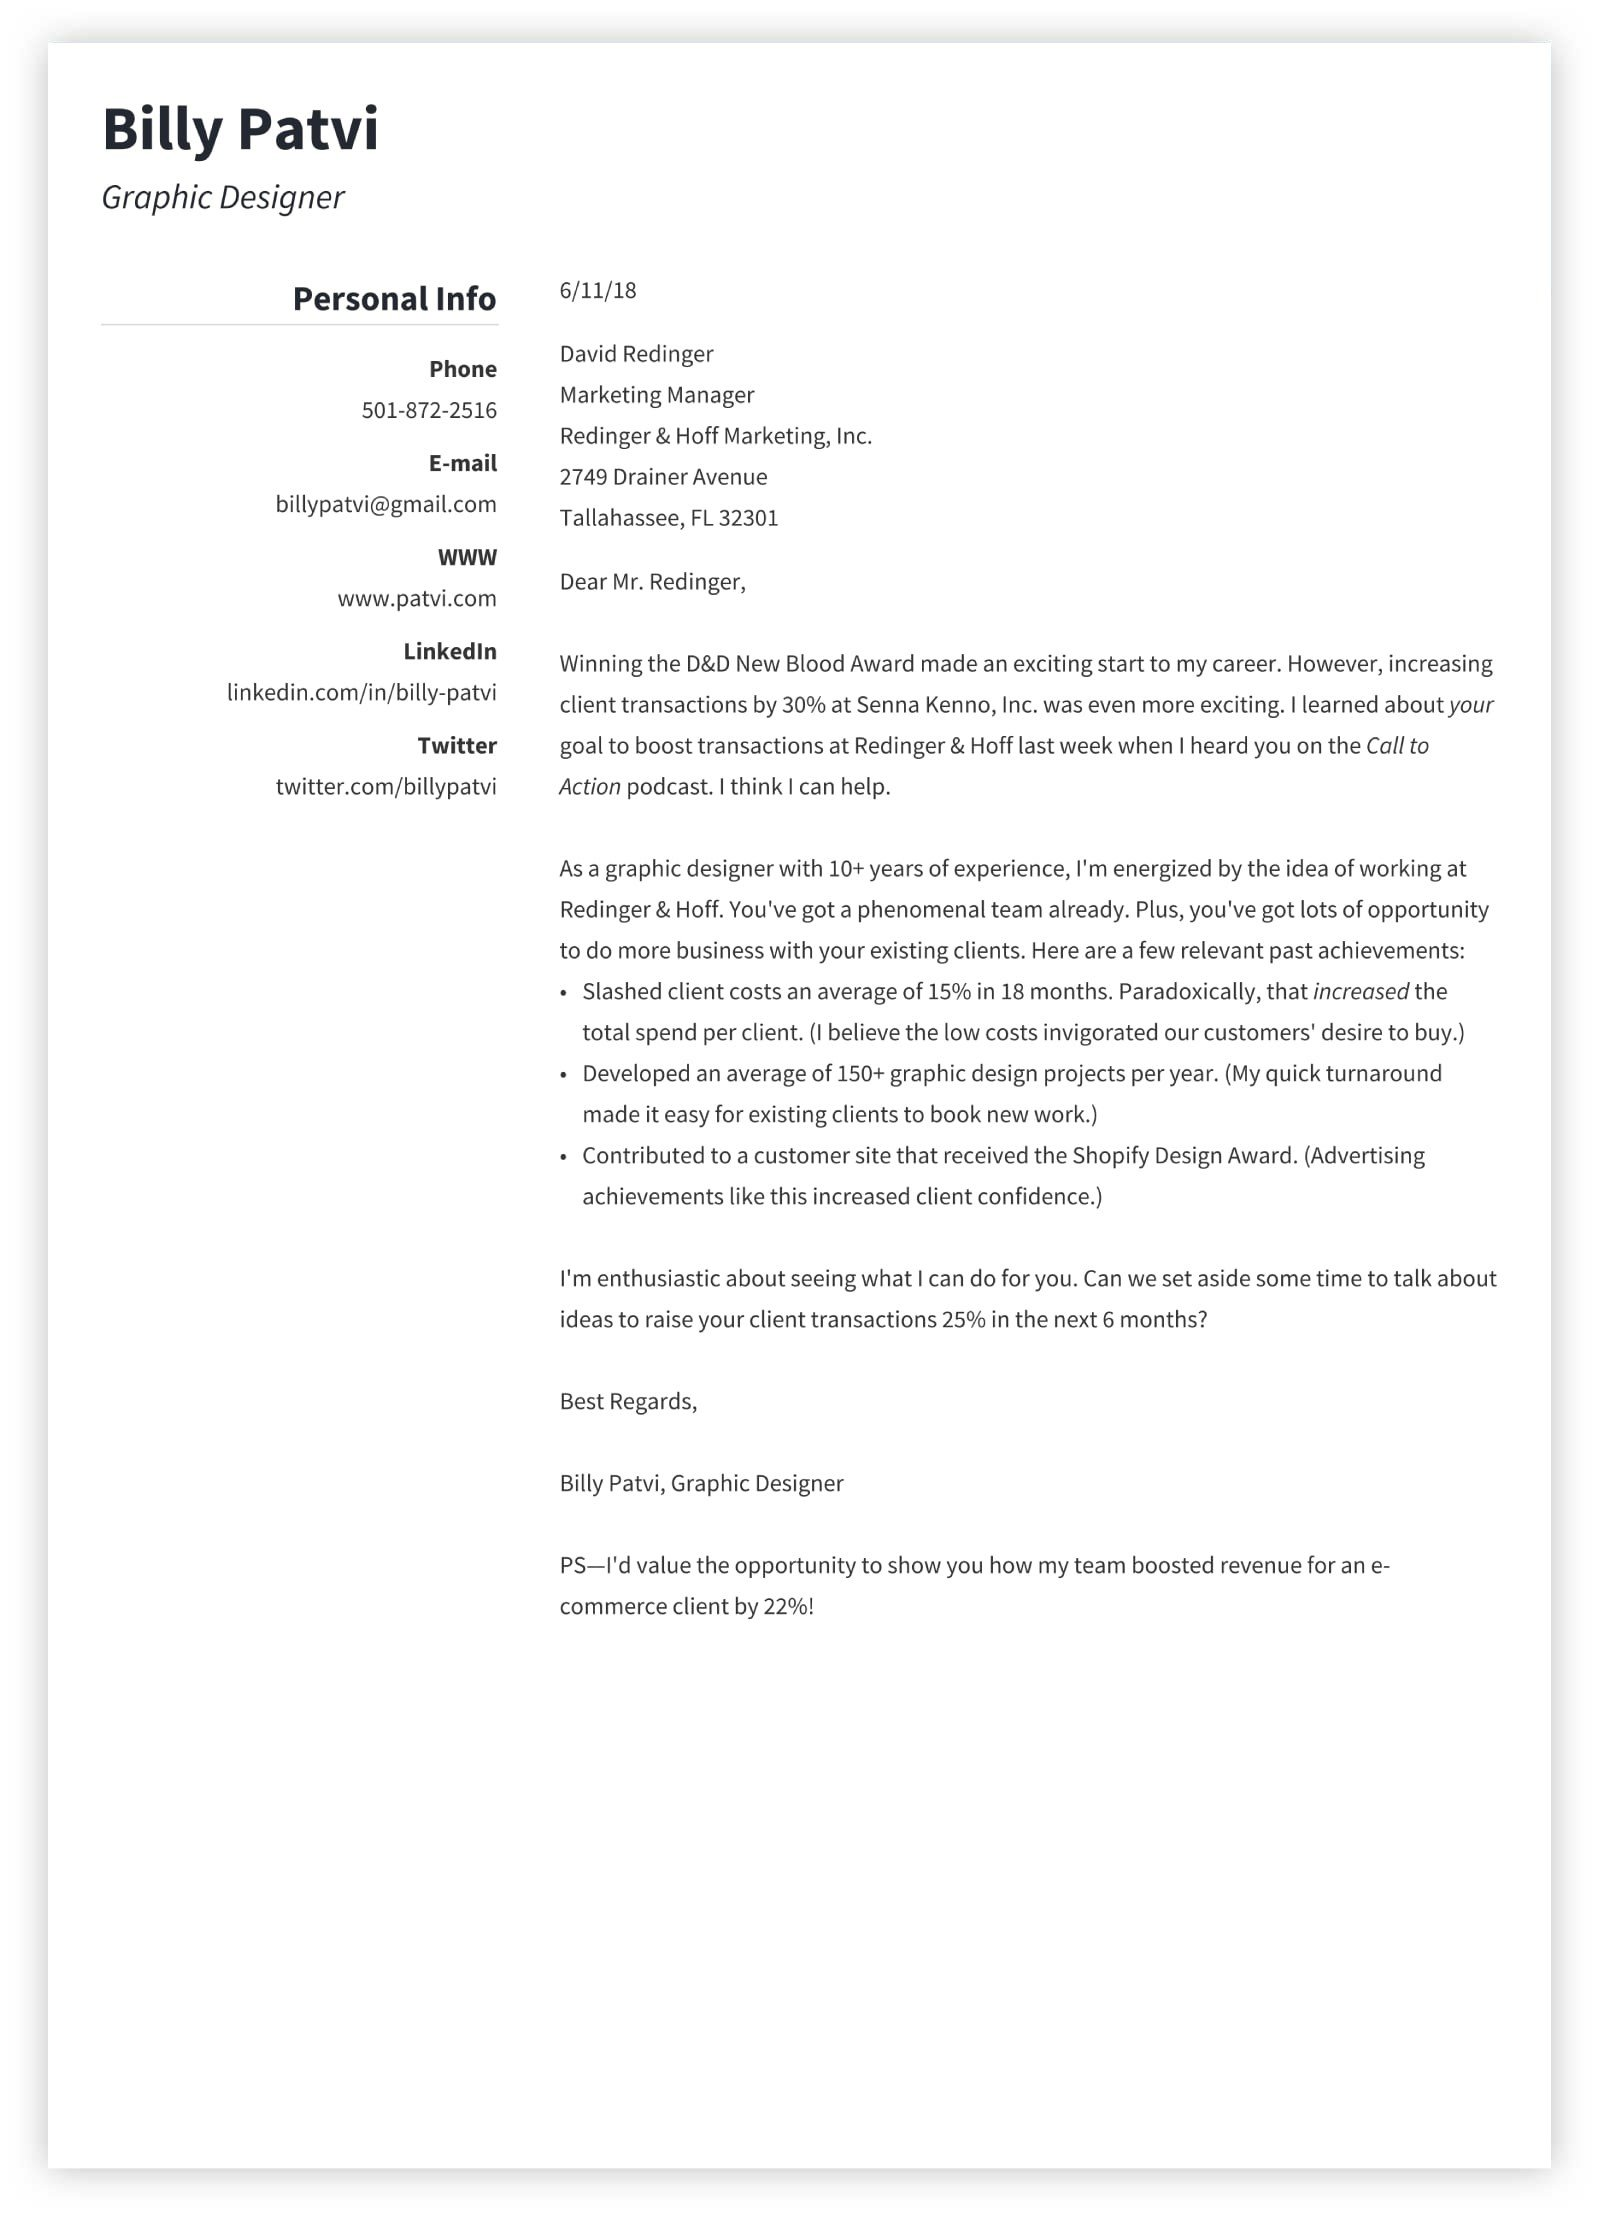 How to Write a Cover Letter in 8 Simple Steps (12+ Examples)